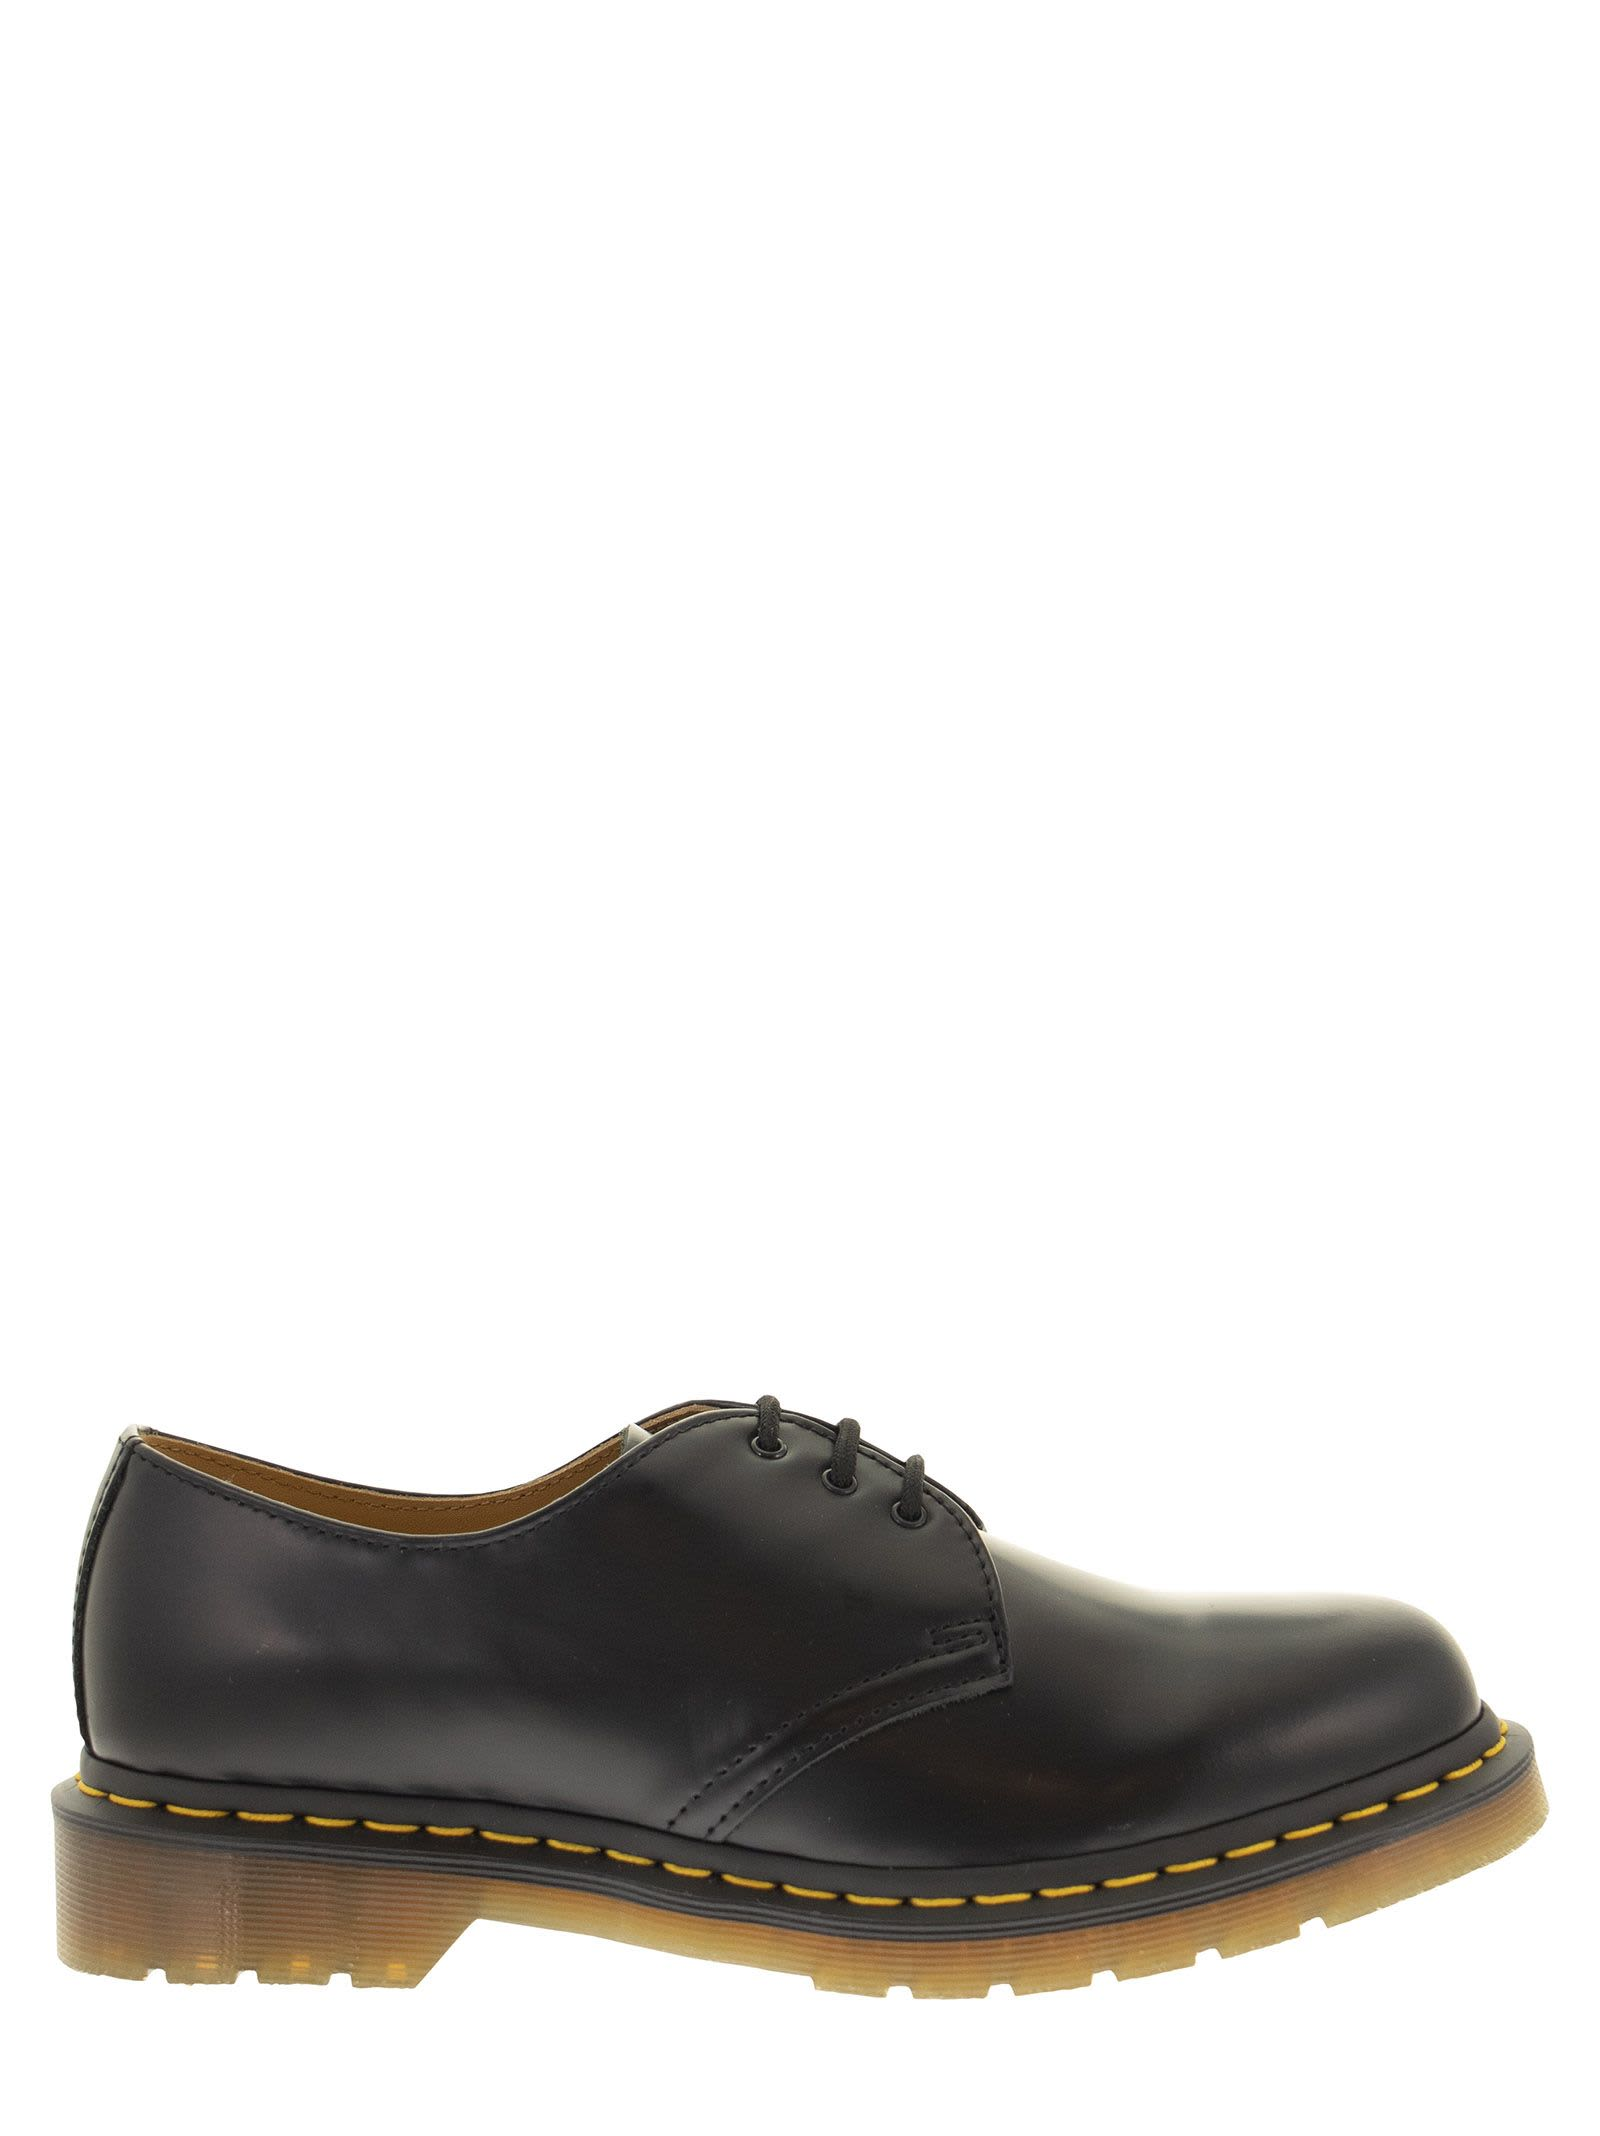 Dr. Martens 1461 Smooth - Laced